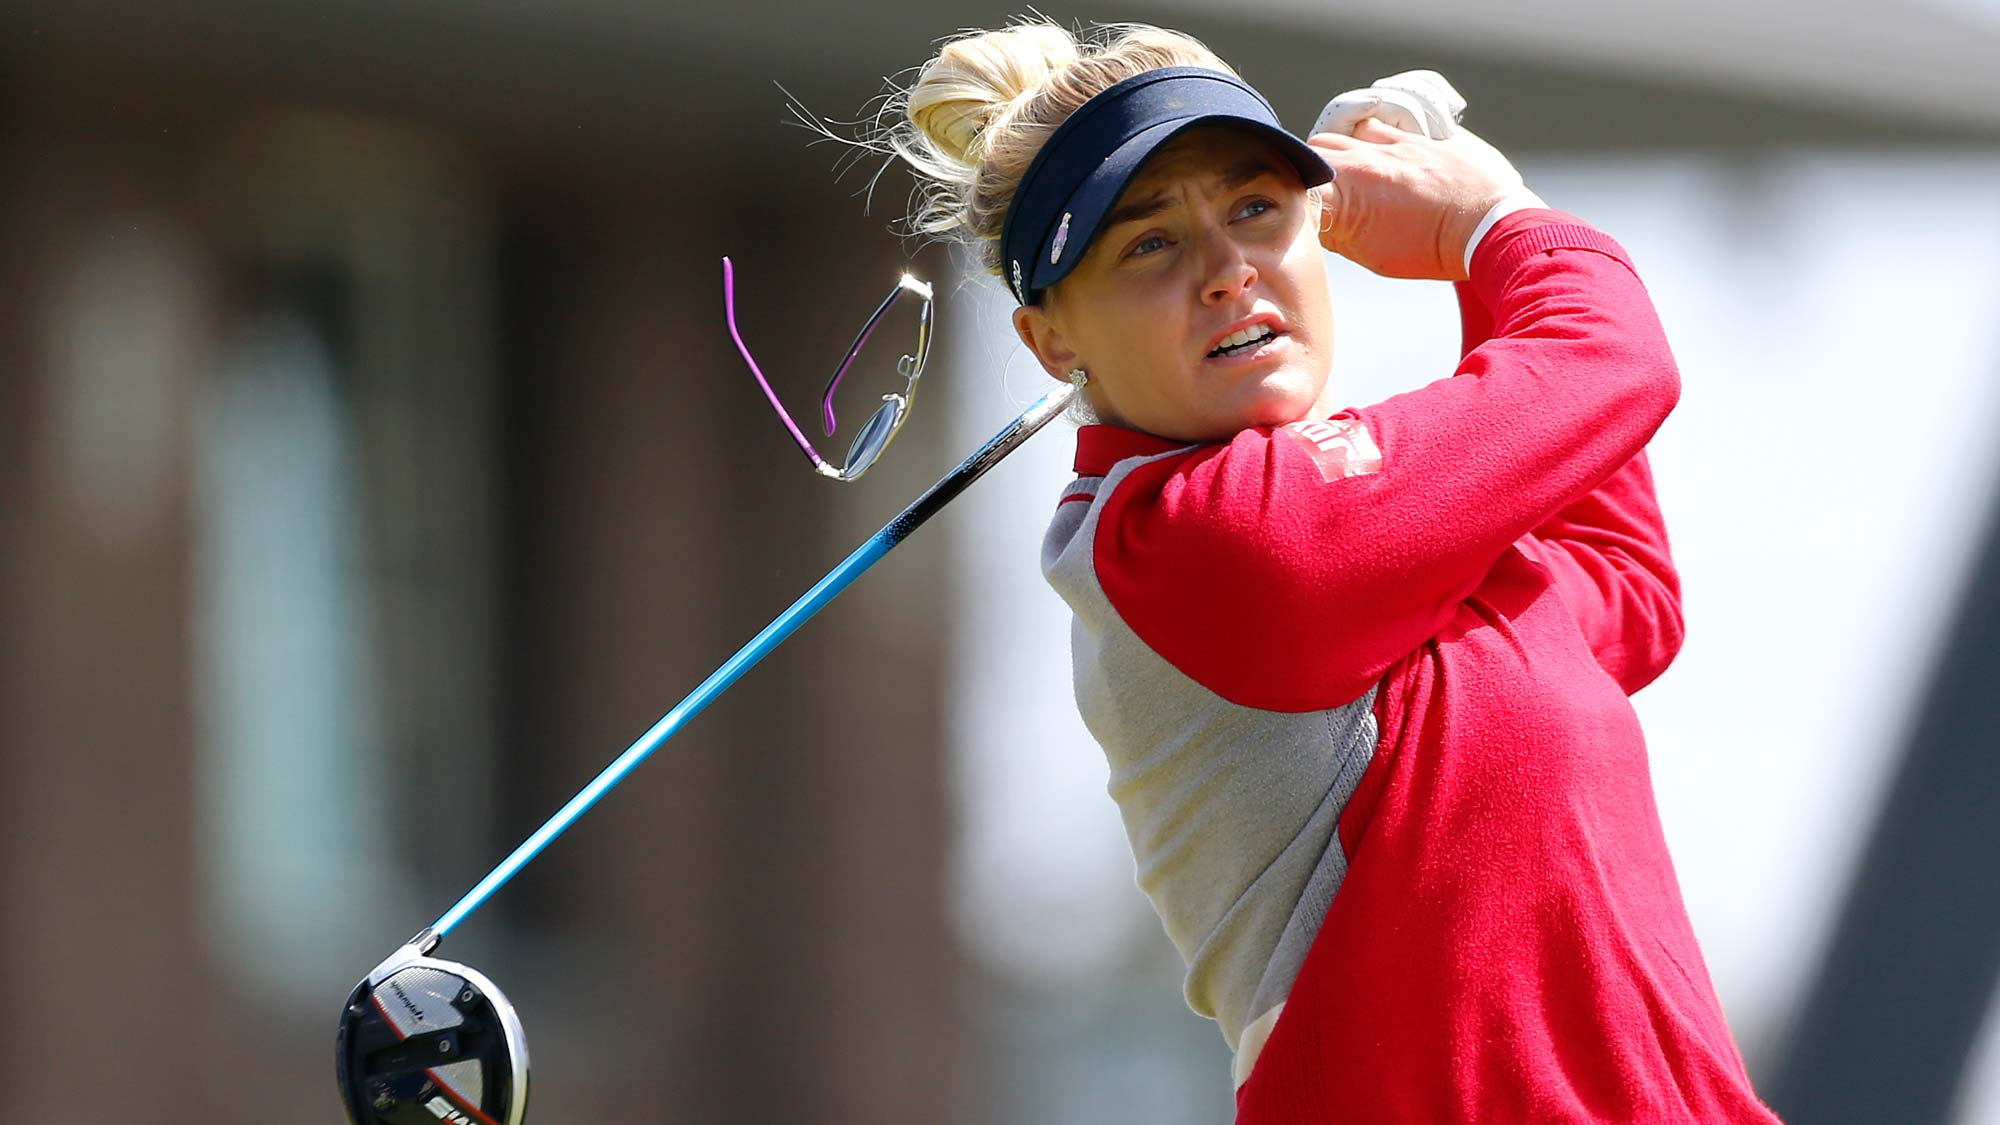 Charley Hull of England hits on the 10th hole during the second round of the LPGA Mediheal Championship